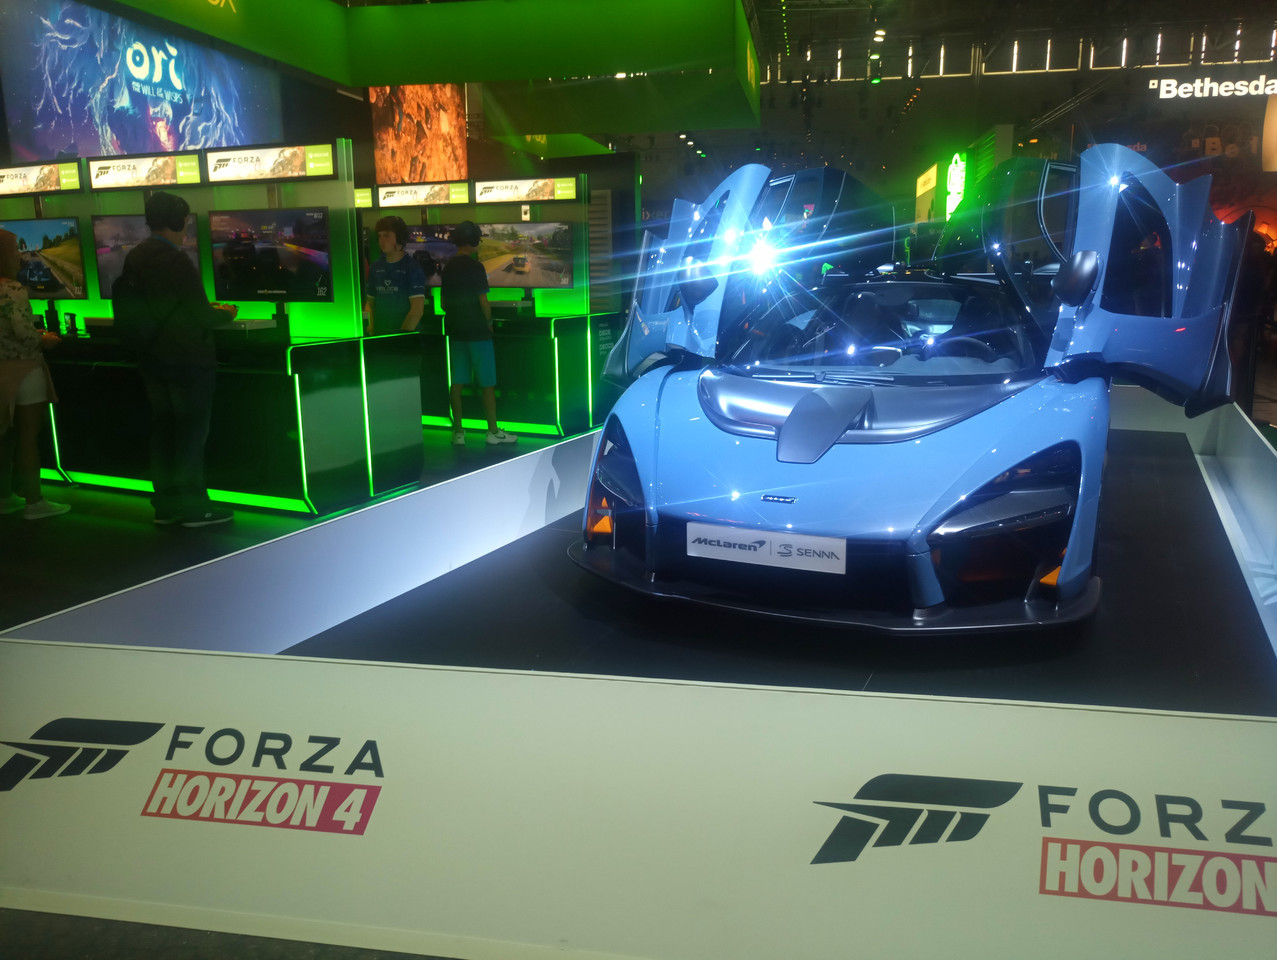 forza horizon 4 pc requirements revealed techpowerup. Black Bedroom Furniture Sets. Home Design Ideas